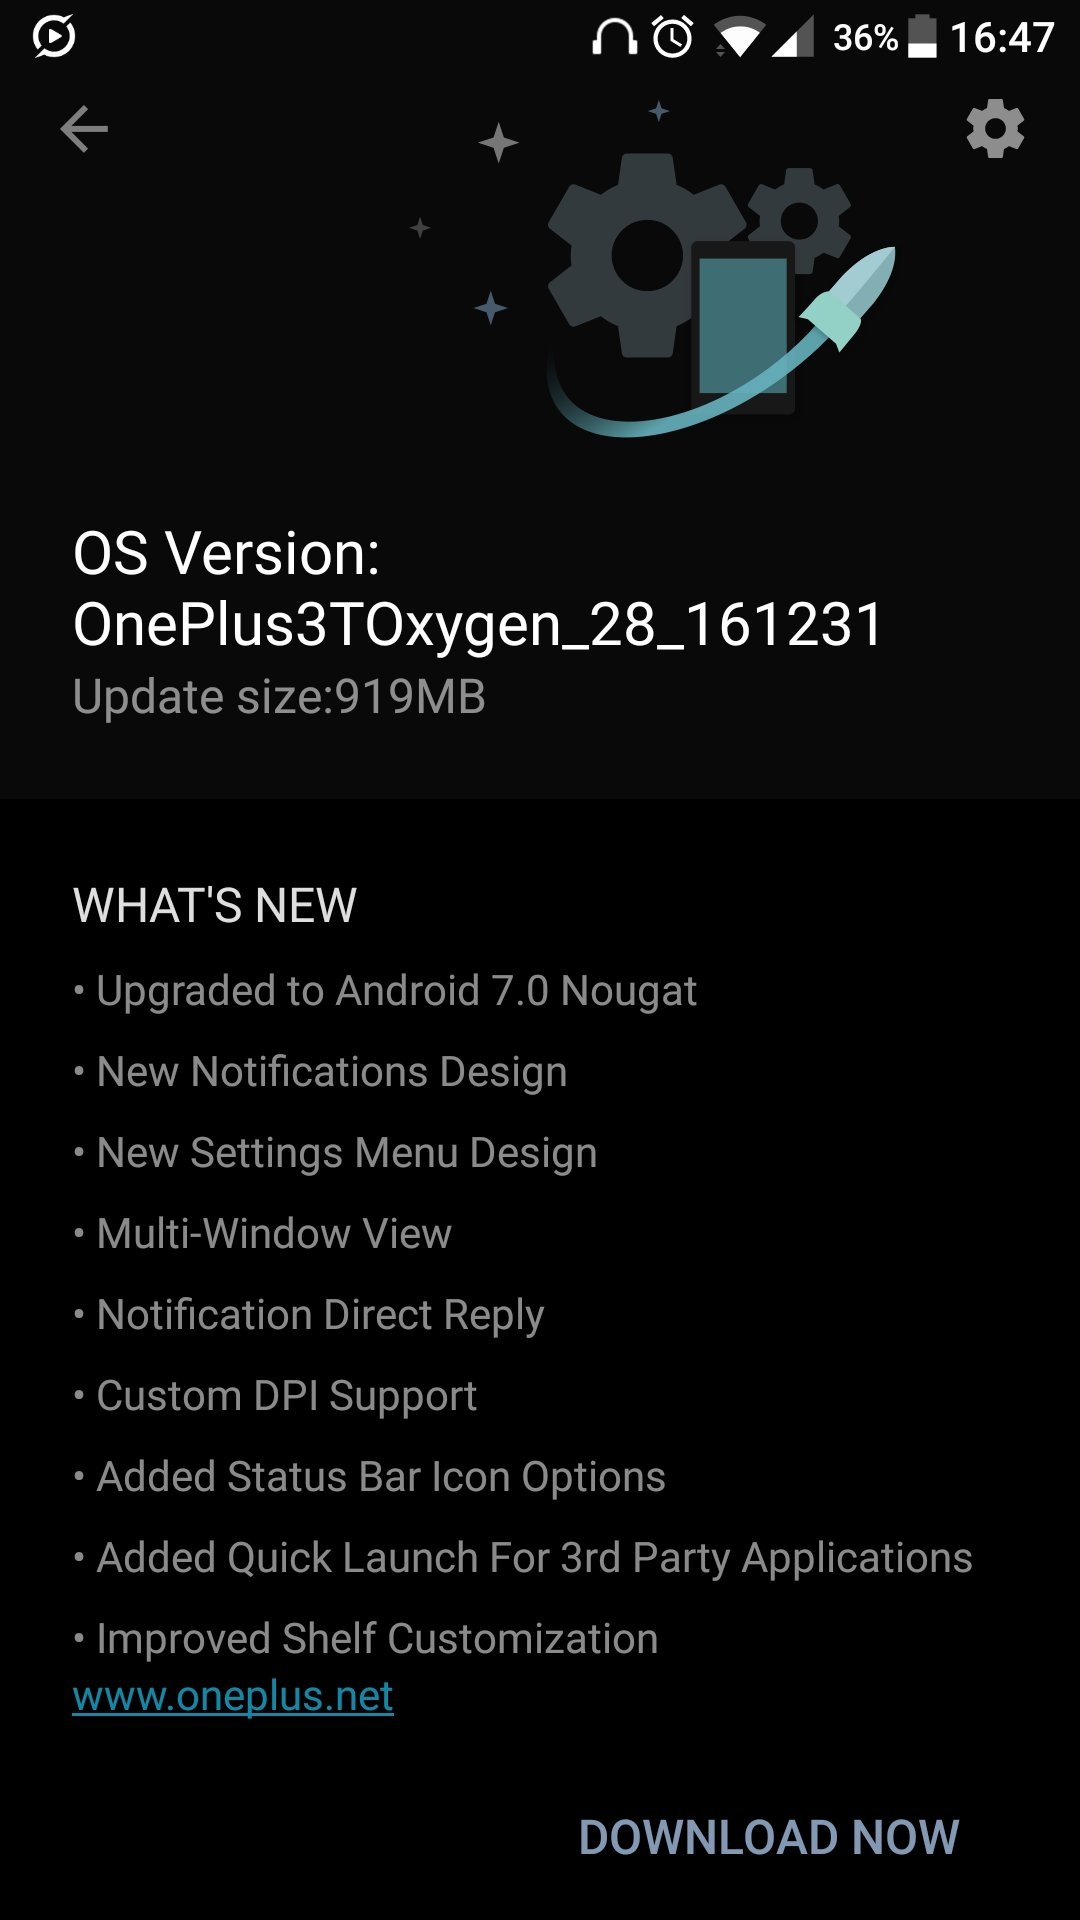 OnePlus 3 and 3T Nougat 7.0 update